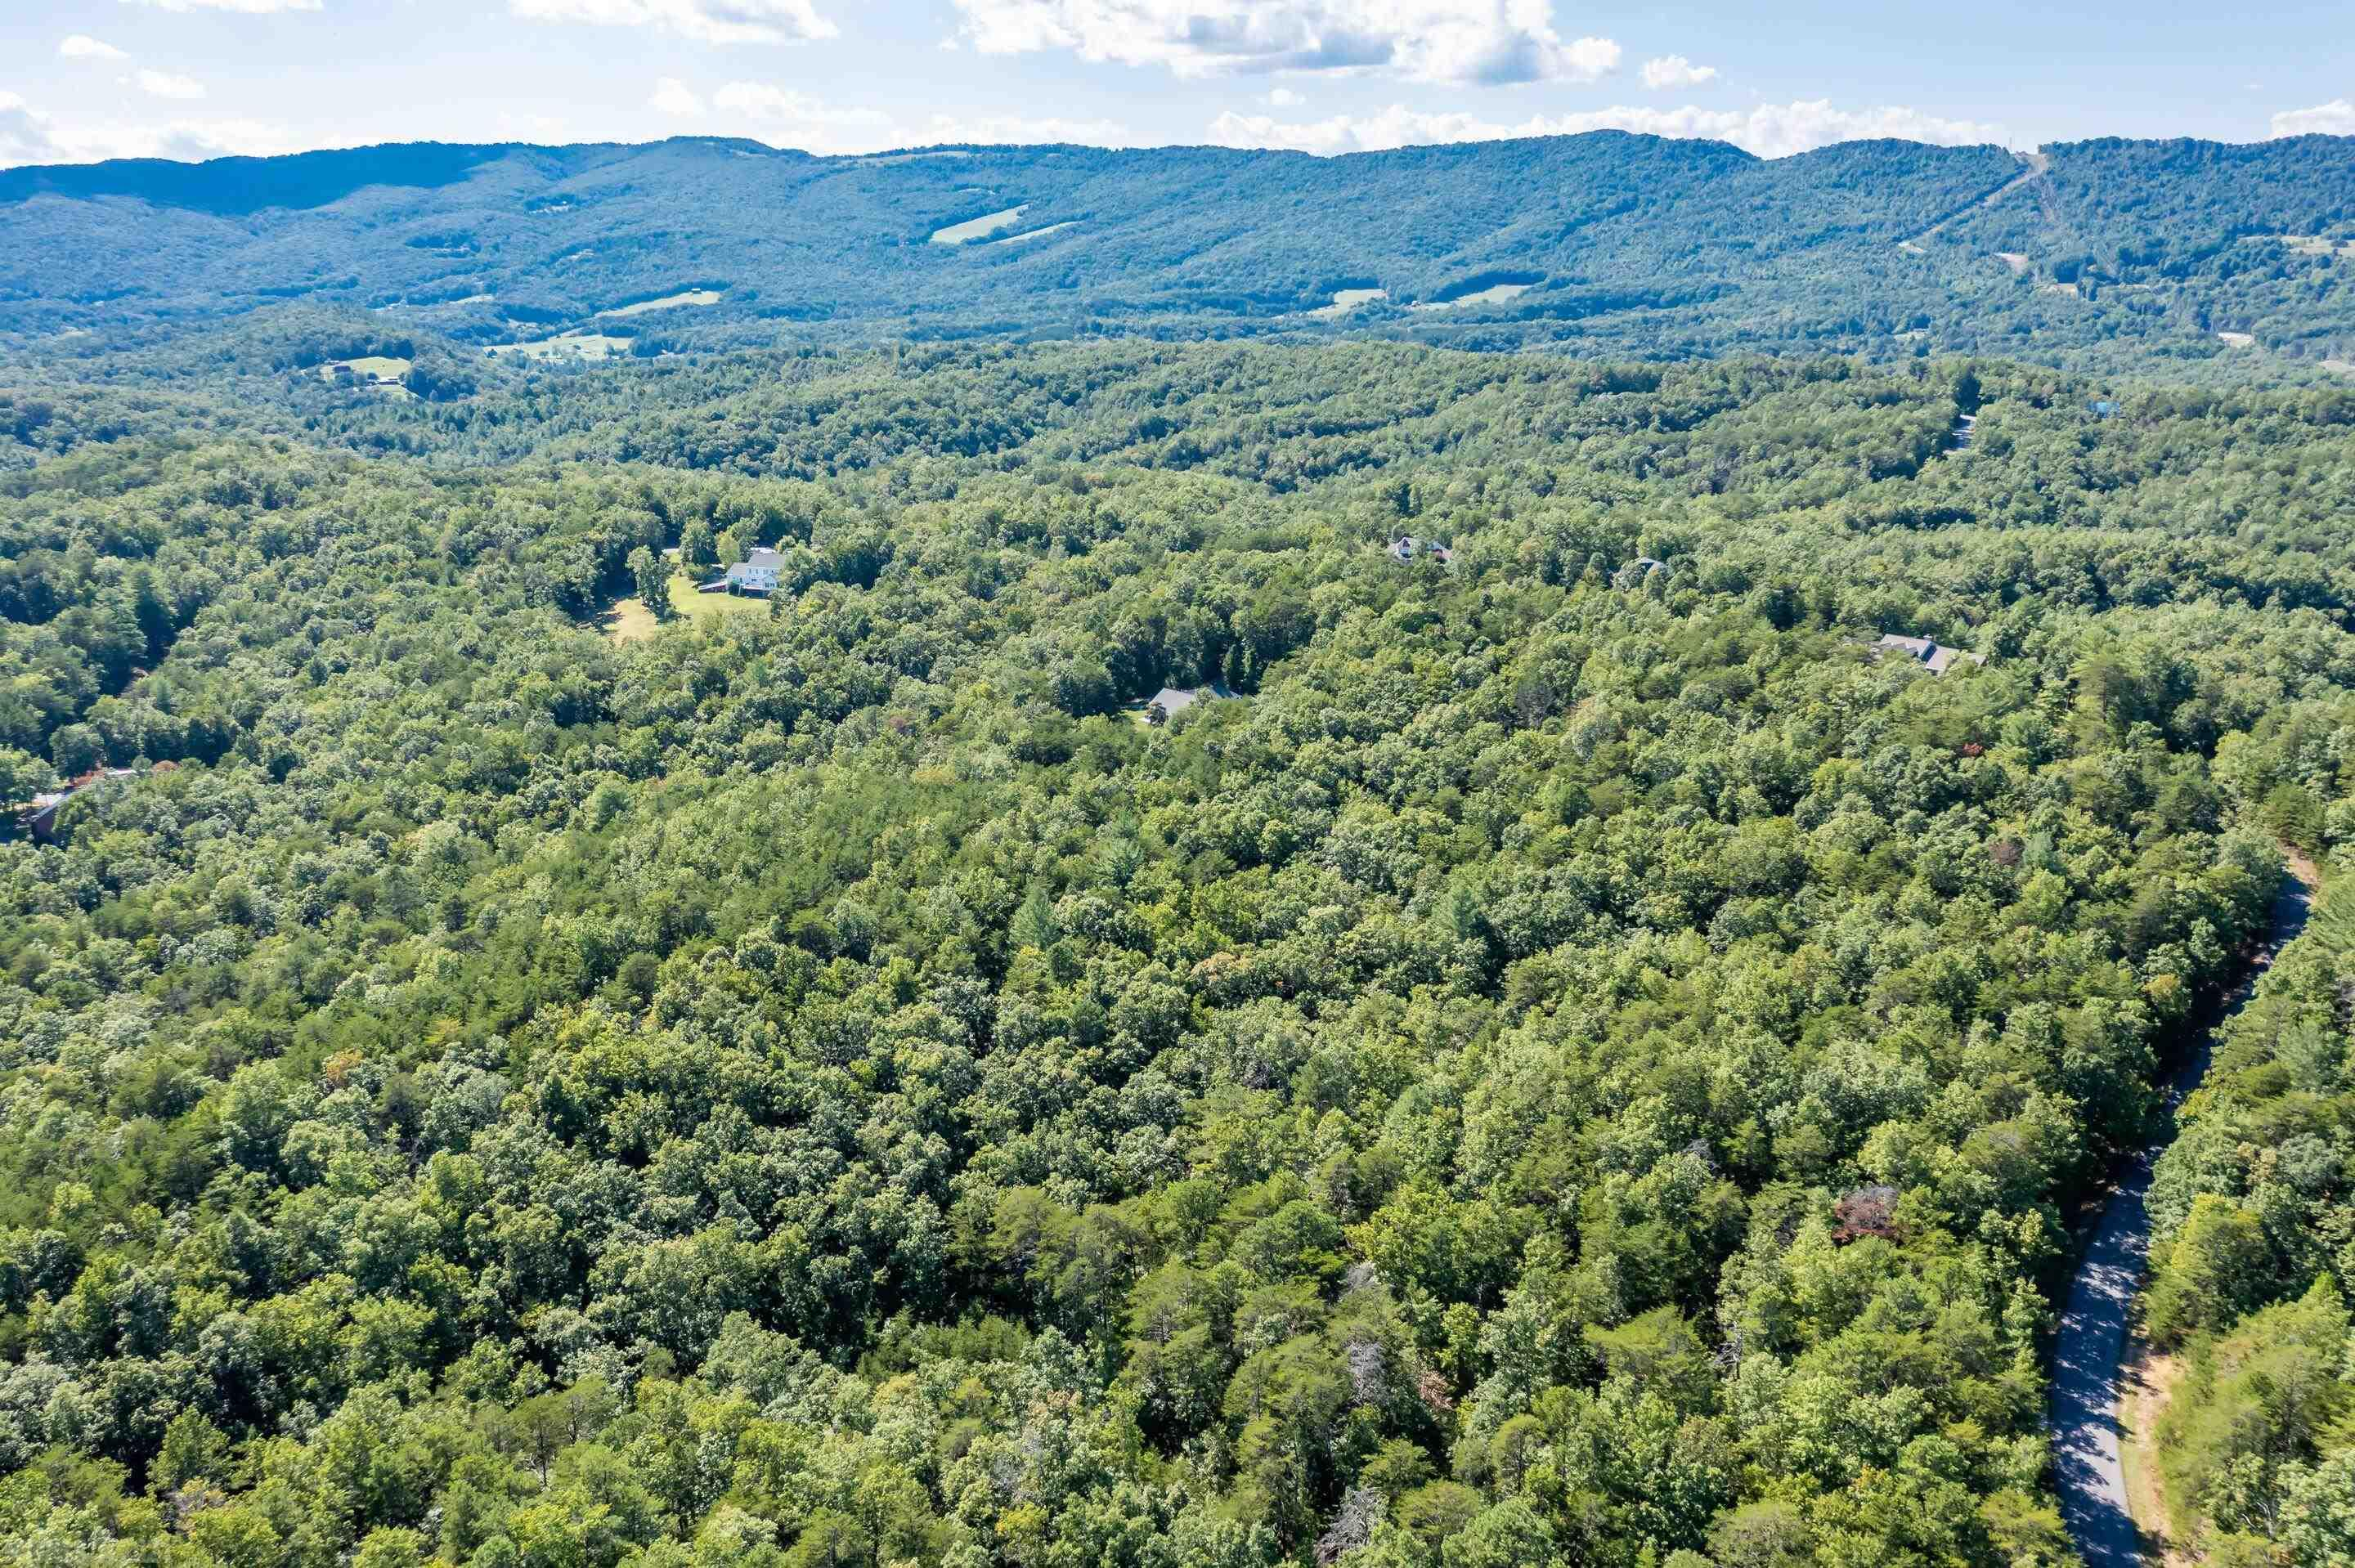 If you're looking to be out a little with some space and fresh air then be sure to check out this land featuring almost 9 acres almost flat in an established neighborhood surrounded by custom built homes.  Beautiful mountain views surround the 3 building sites that have already been perked.  Conveniently located to Roanoke, Salem, Blacksburg, Christiansburg and of course I-81